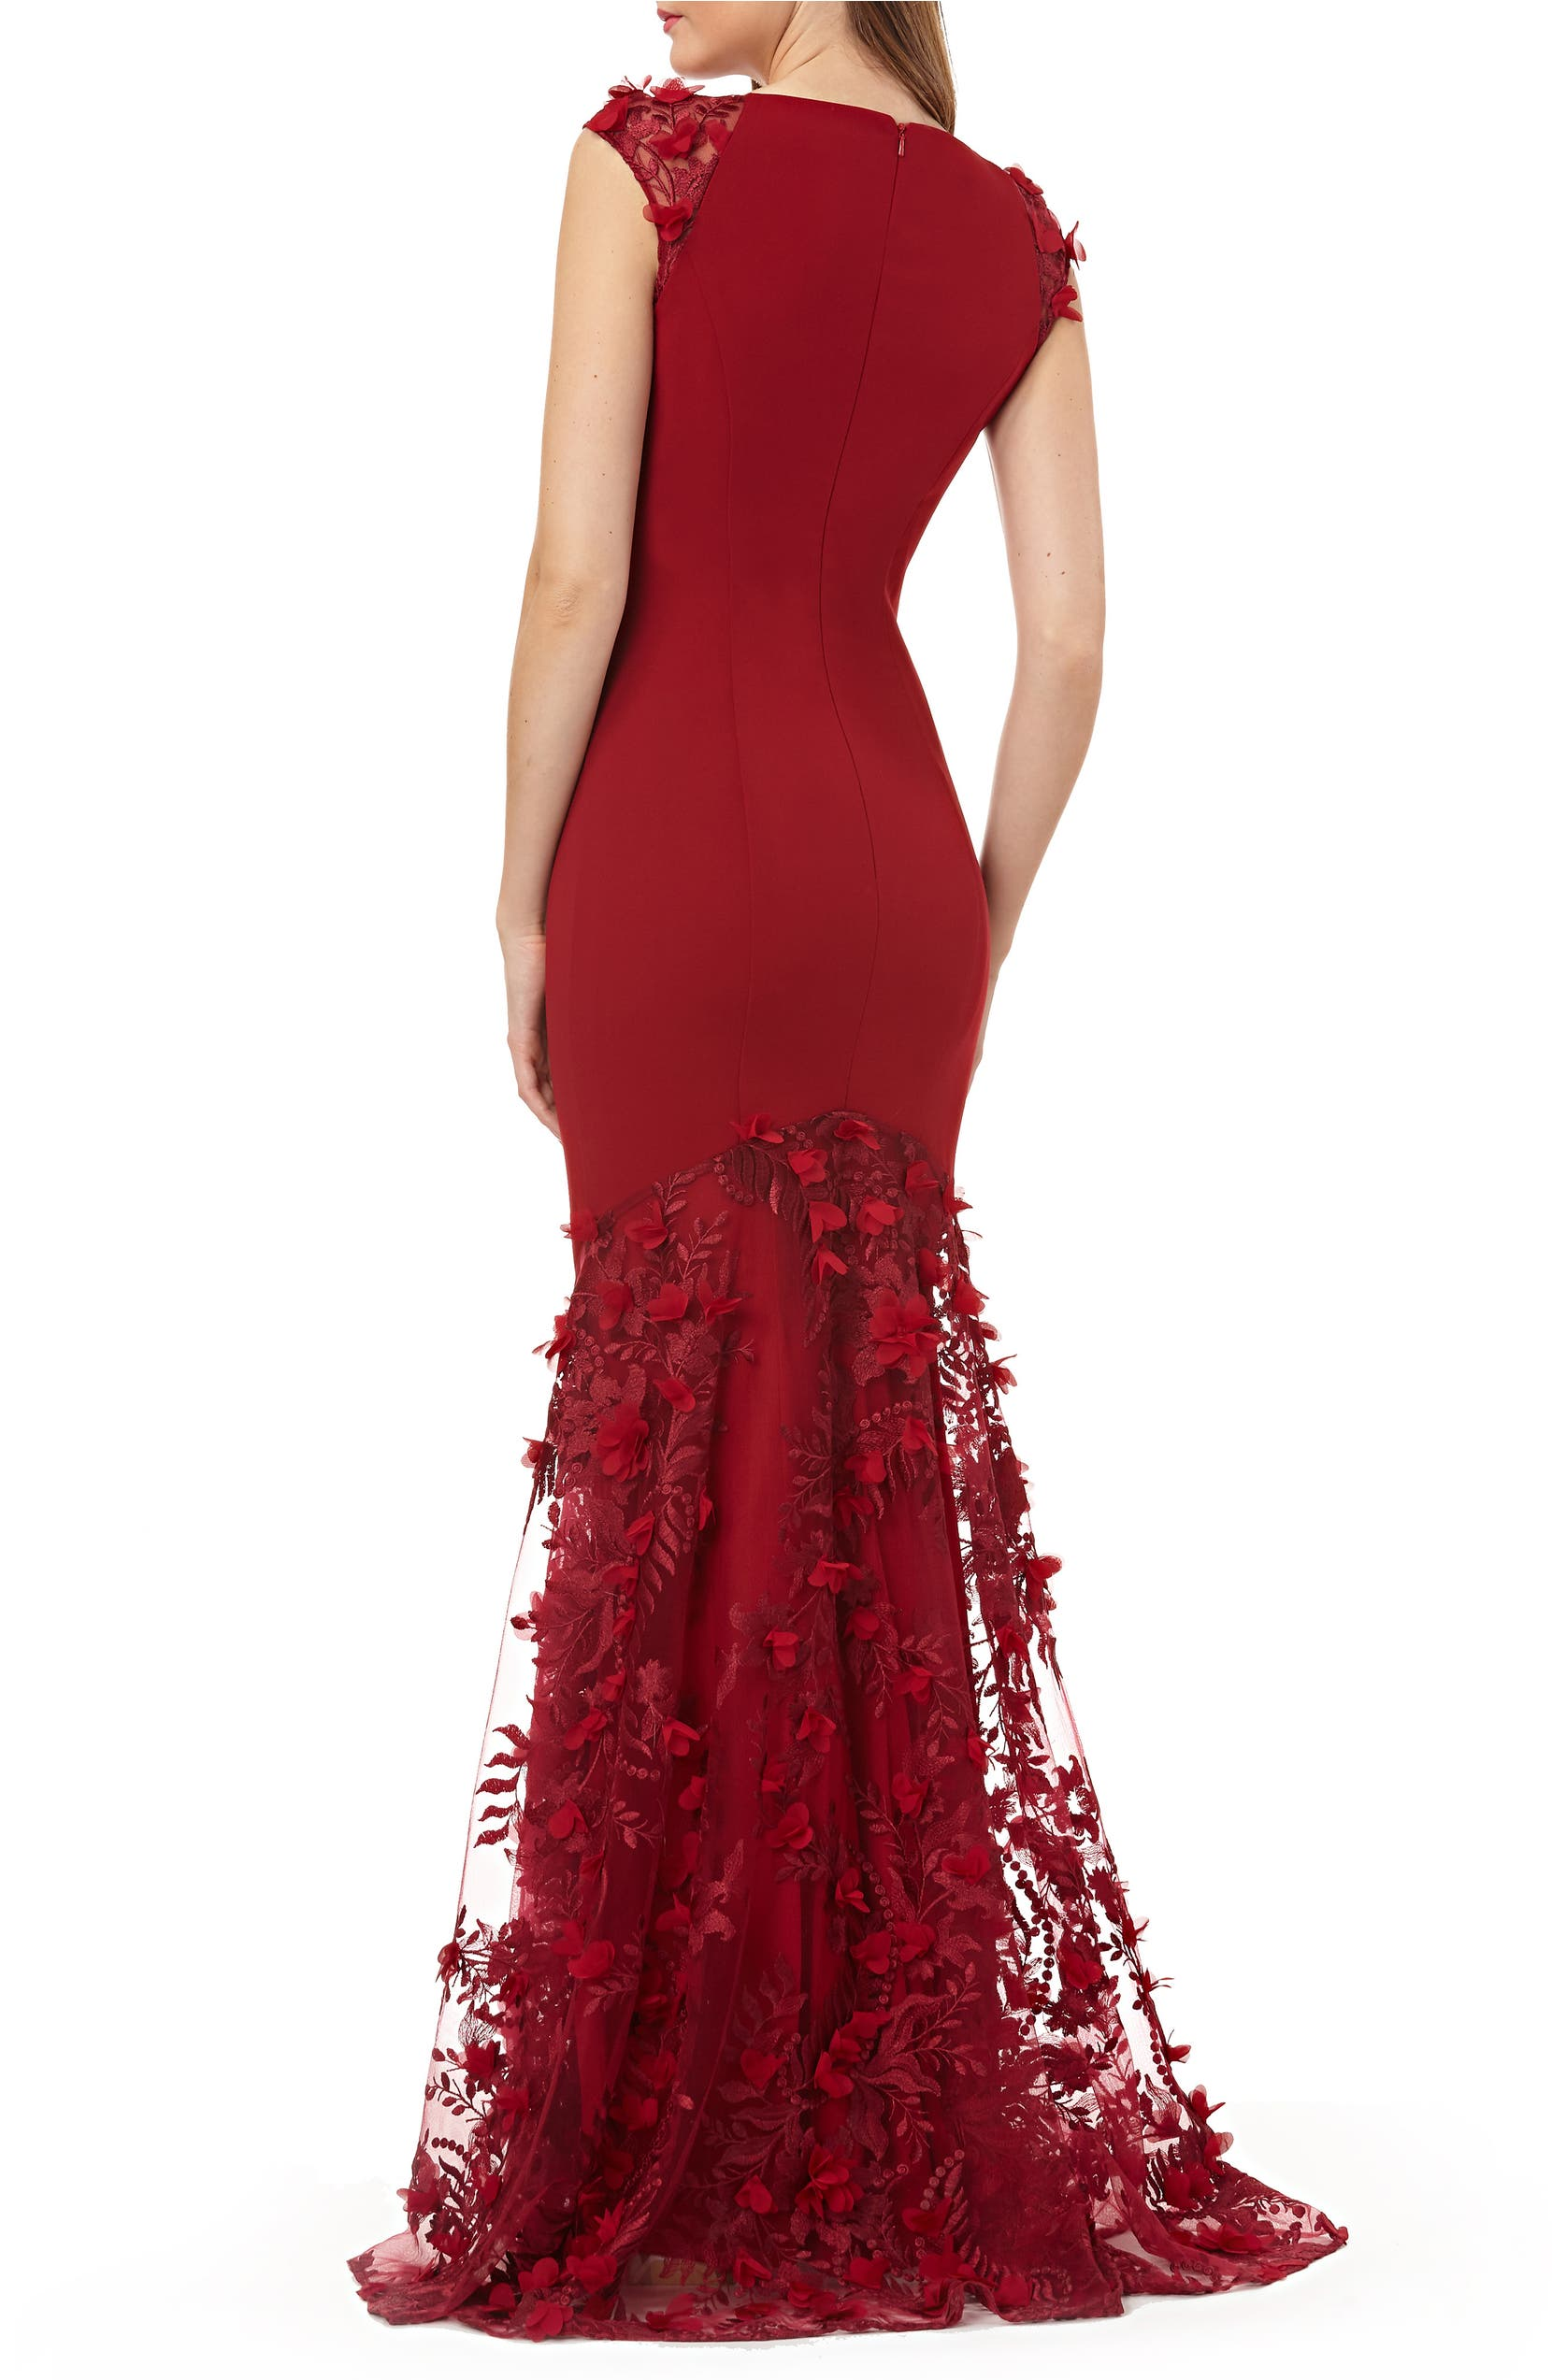 bcc5b86fd5fbe Carmen Marc Valvo Infusion 3D Floral Inset Gown   Nordstrom